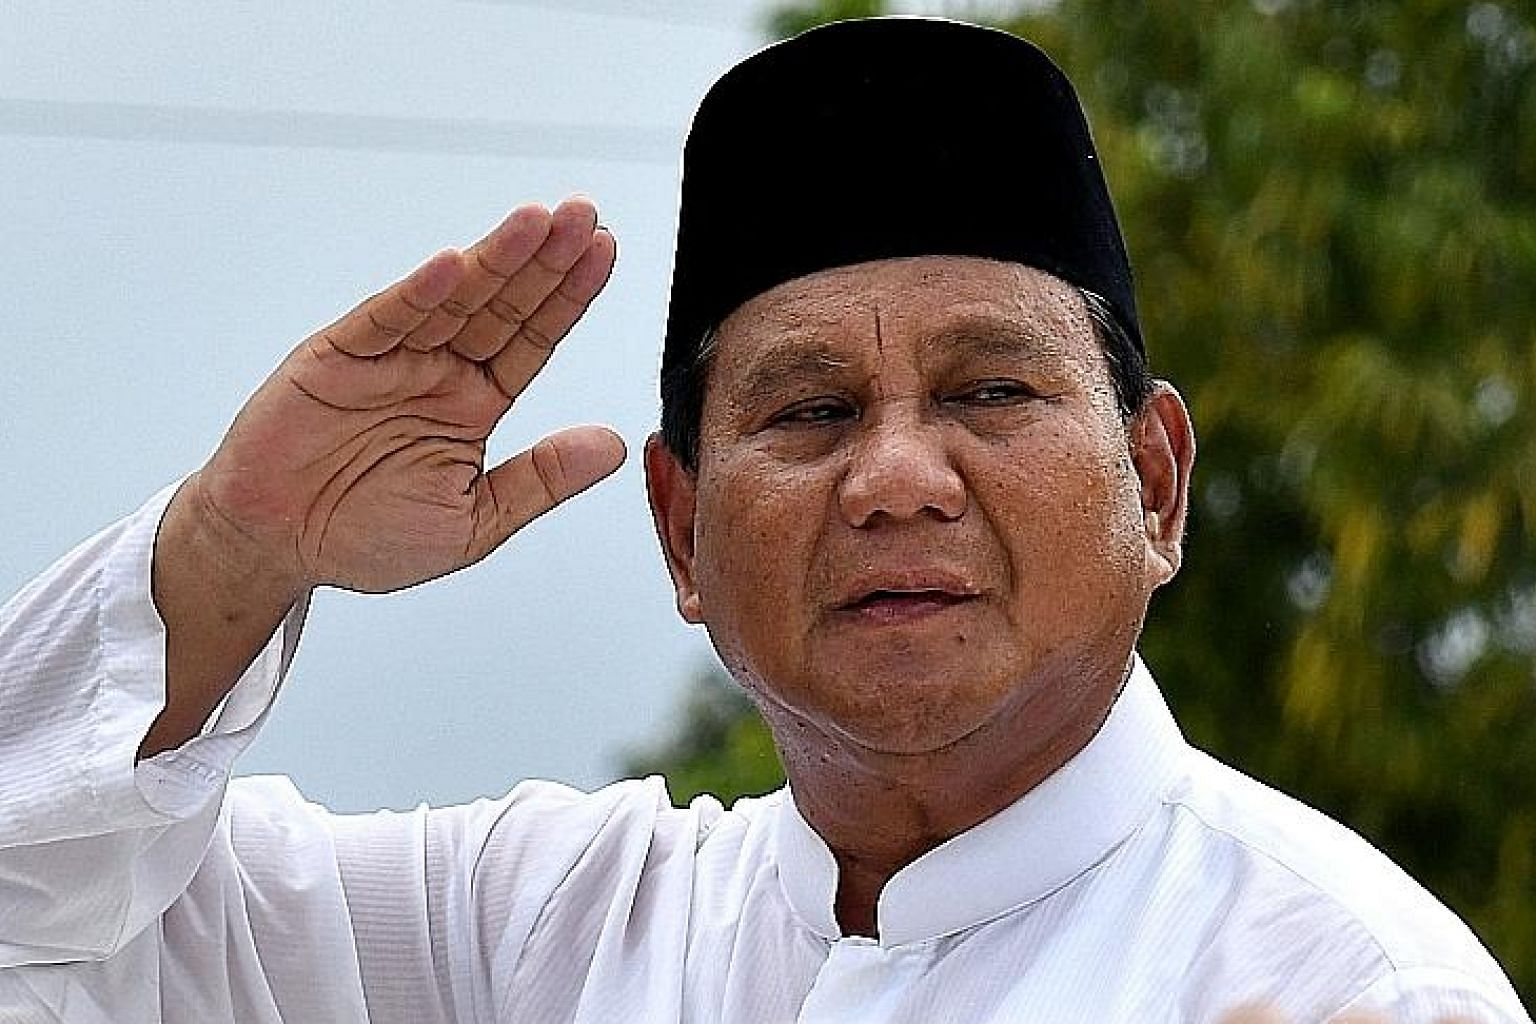 Mr Prabowo Subianto has refused to concede defeat in the April 17 presidential election.